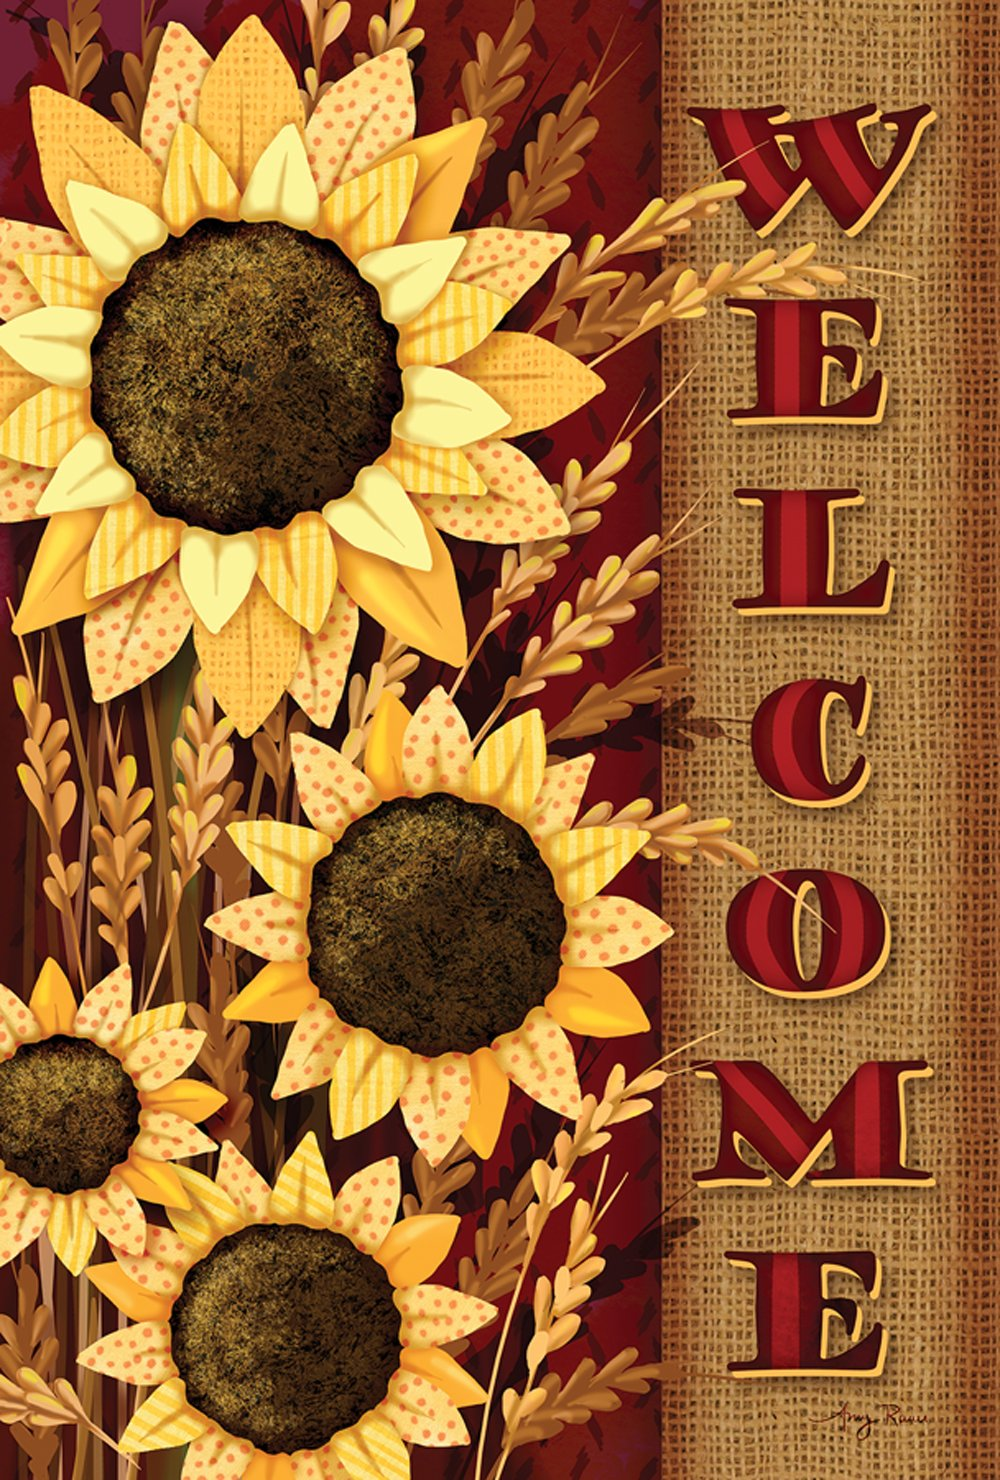 Toland Home Garden Welcome Sunflowers 28 x 40 Inch Decorative Fall Autumn Flower House Flag